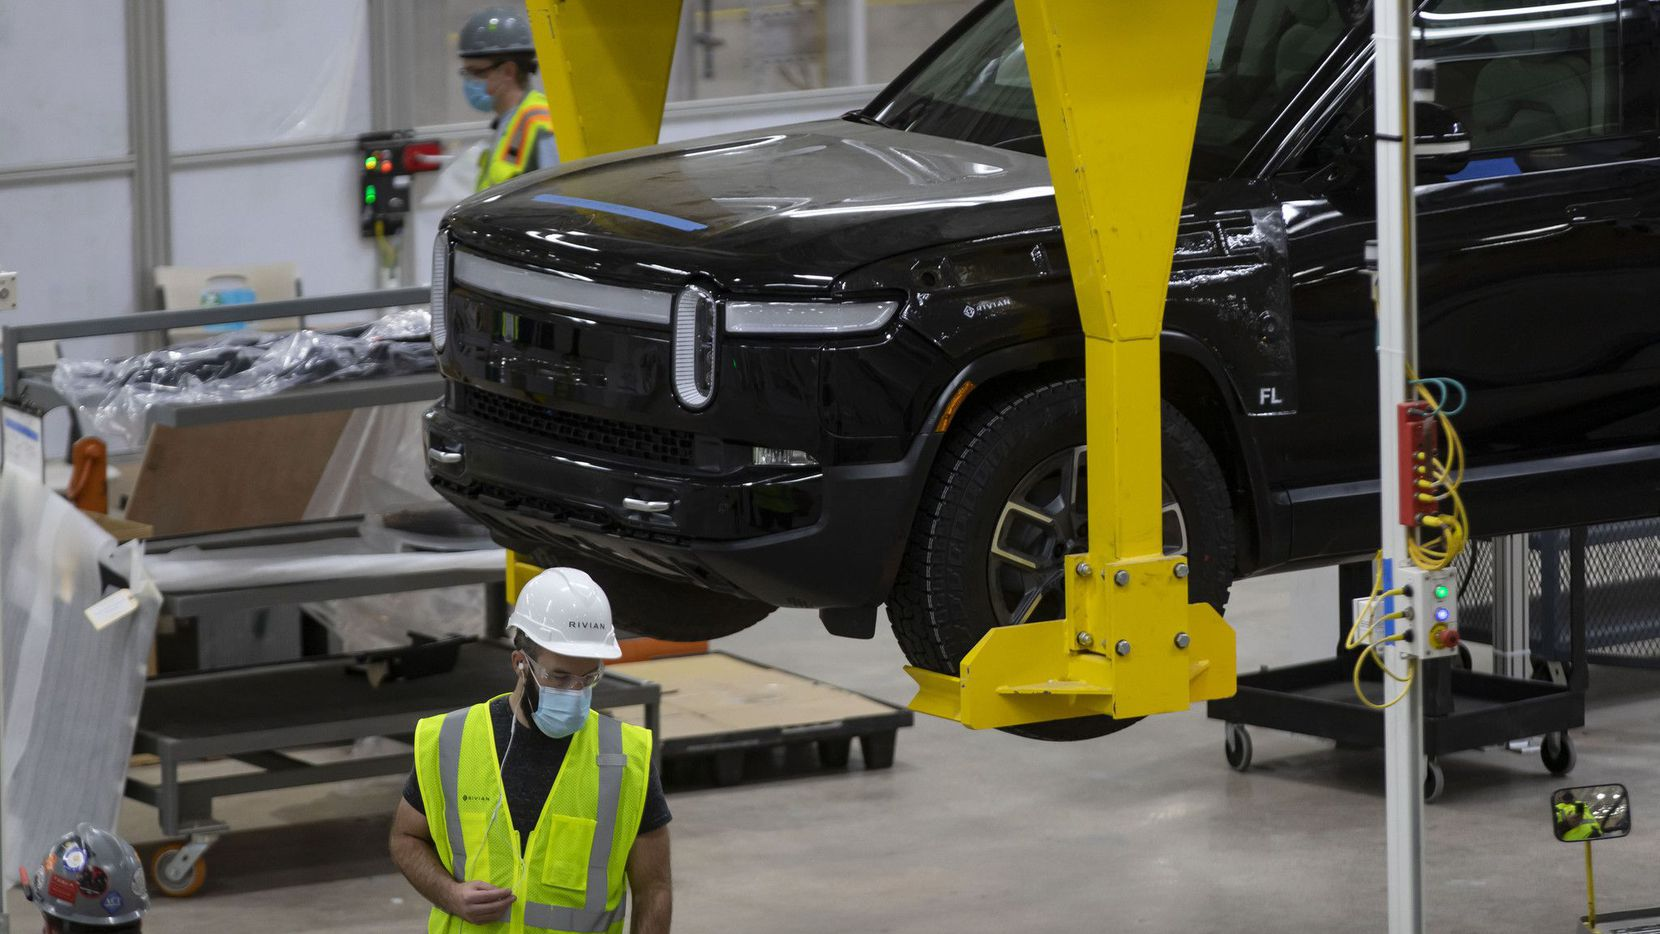 Vehicles are assembled and tested April 14, 2021, at the Rivian plant in Normal, Ill.